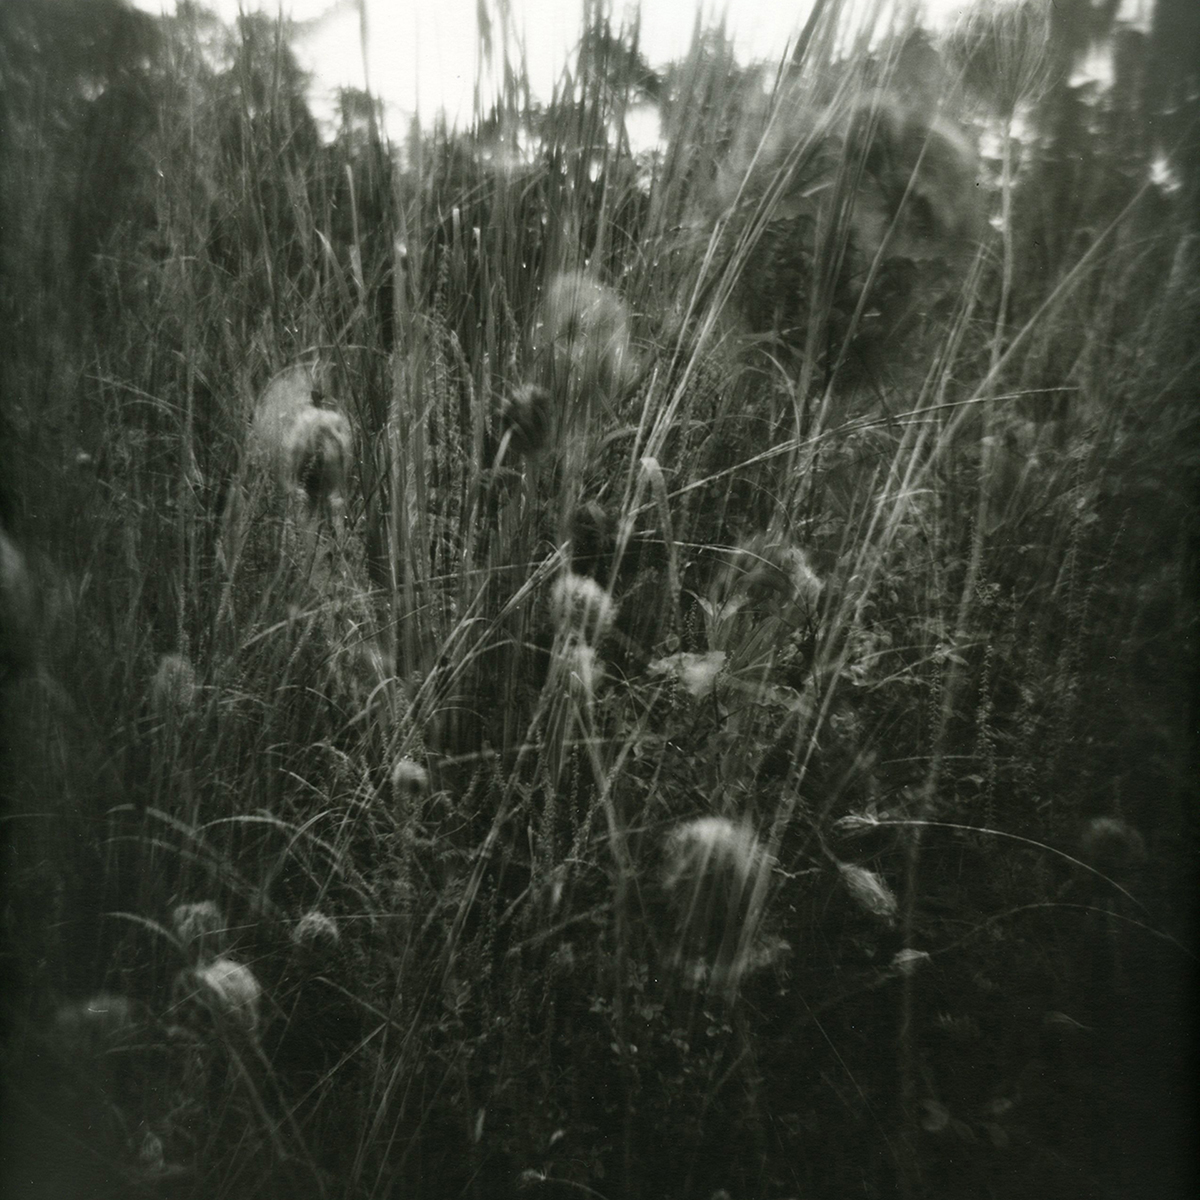 """""""Untitled"""" from the Dream Series by Erica Popp. 2016. Silver gelatin print."""